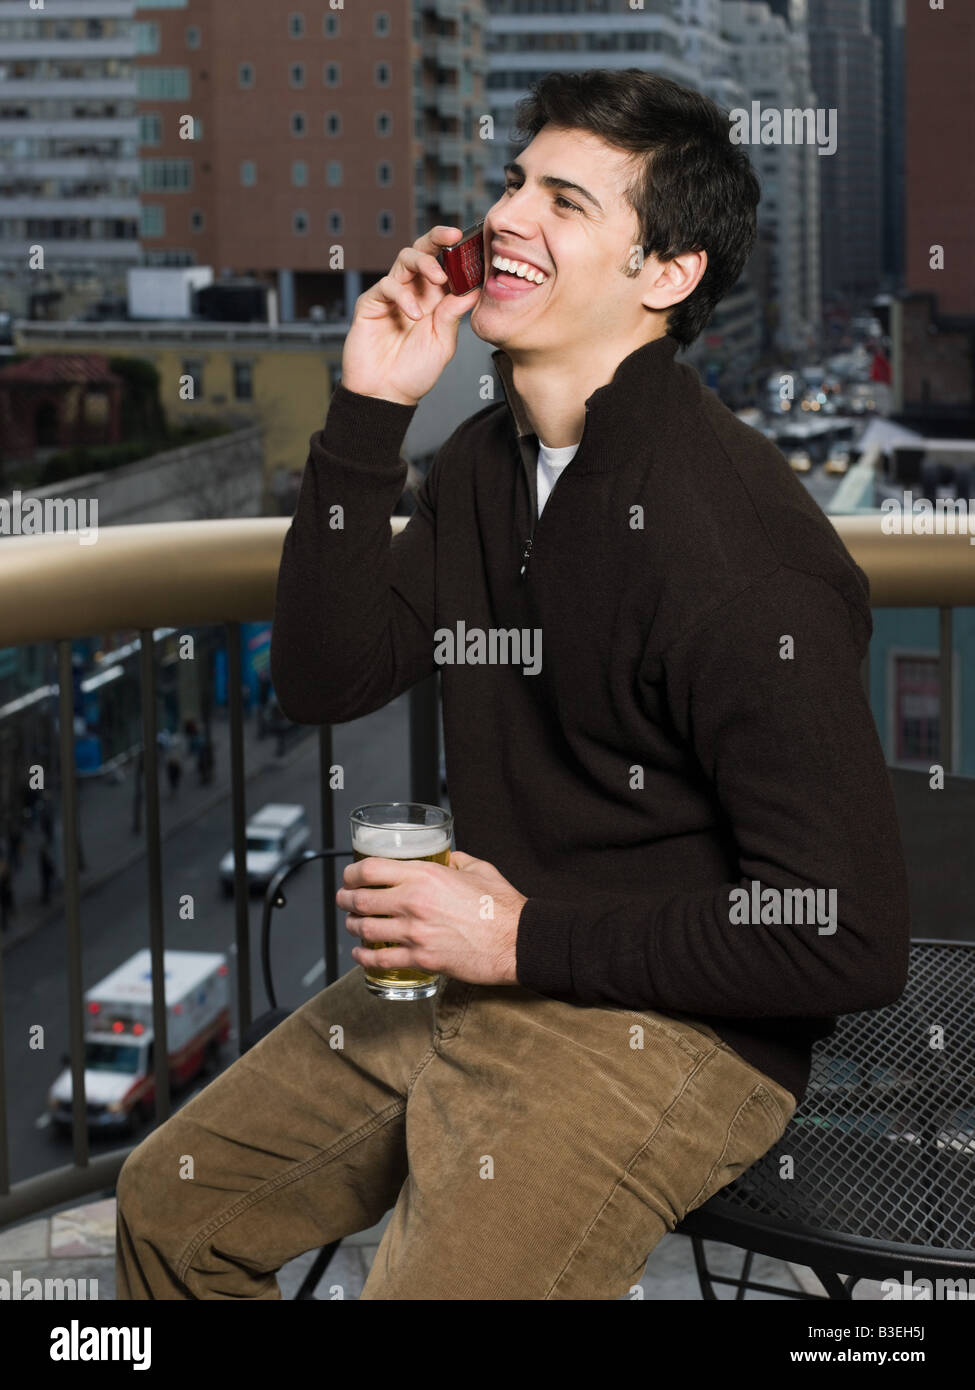 Man with cellphone and beer - Stock Image